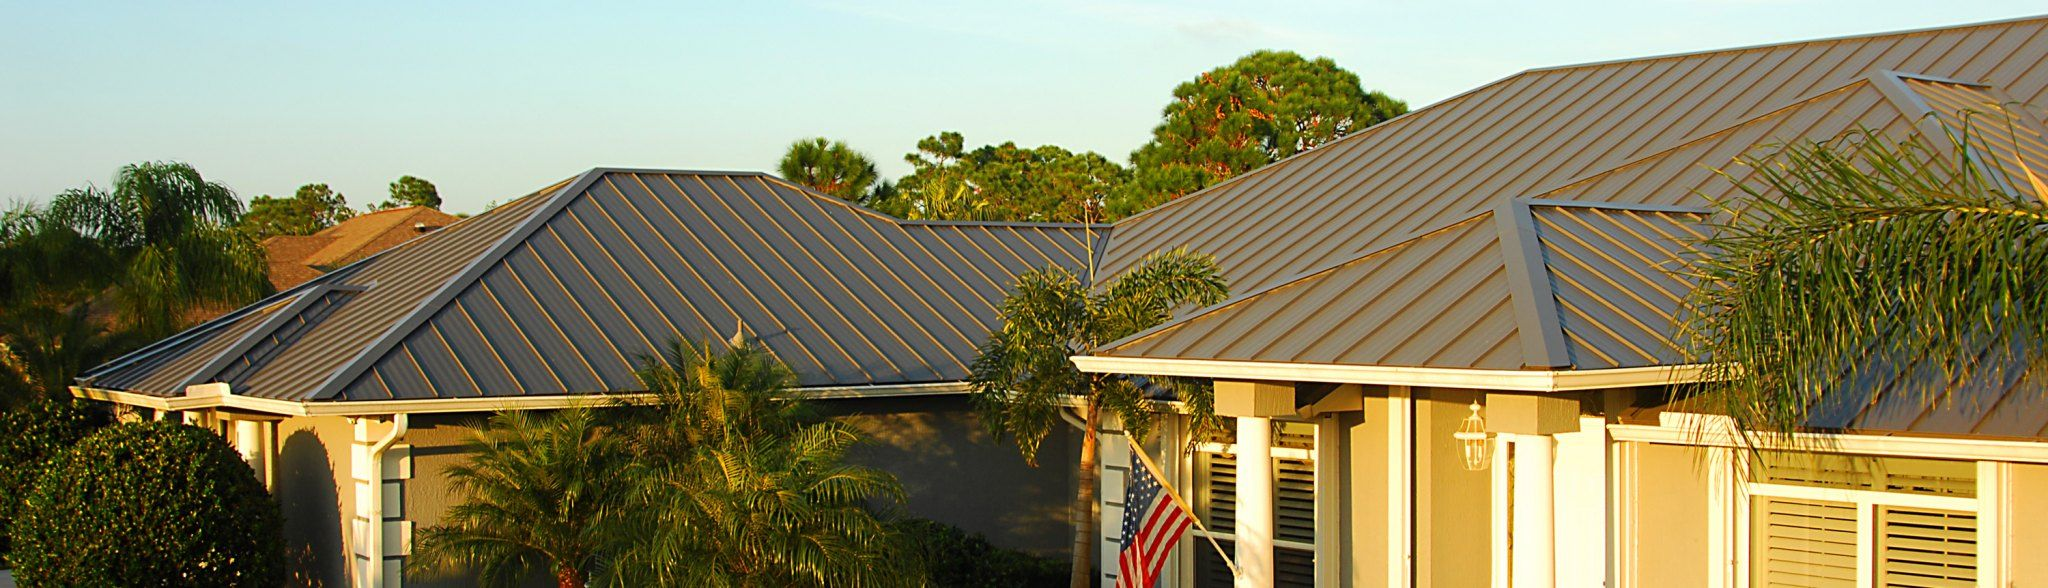 Why A Metal Roof The Fastest Growing Category Of Roofing In The U S For Good Reason Beautiful Roofs Metal Roof Roof Cost